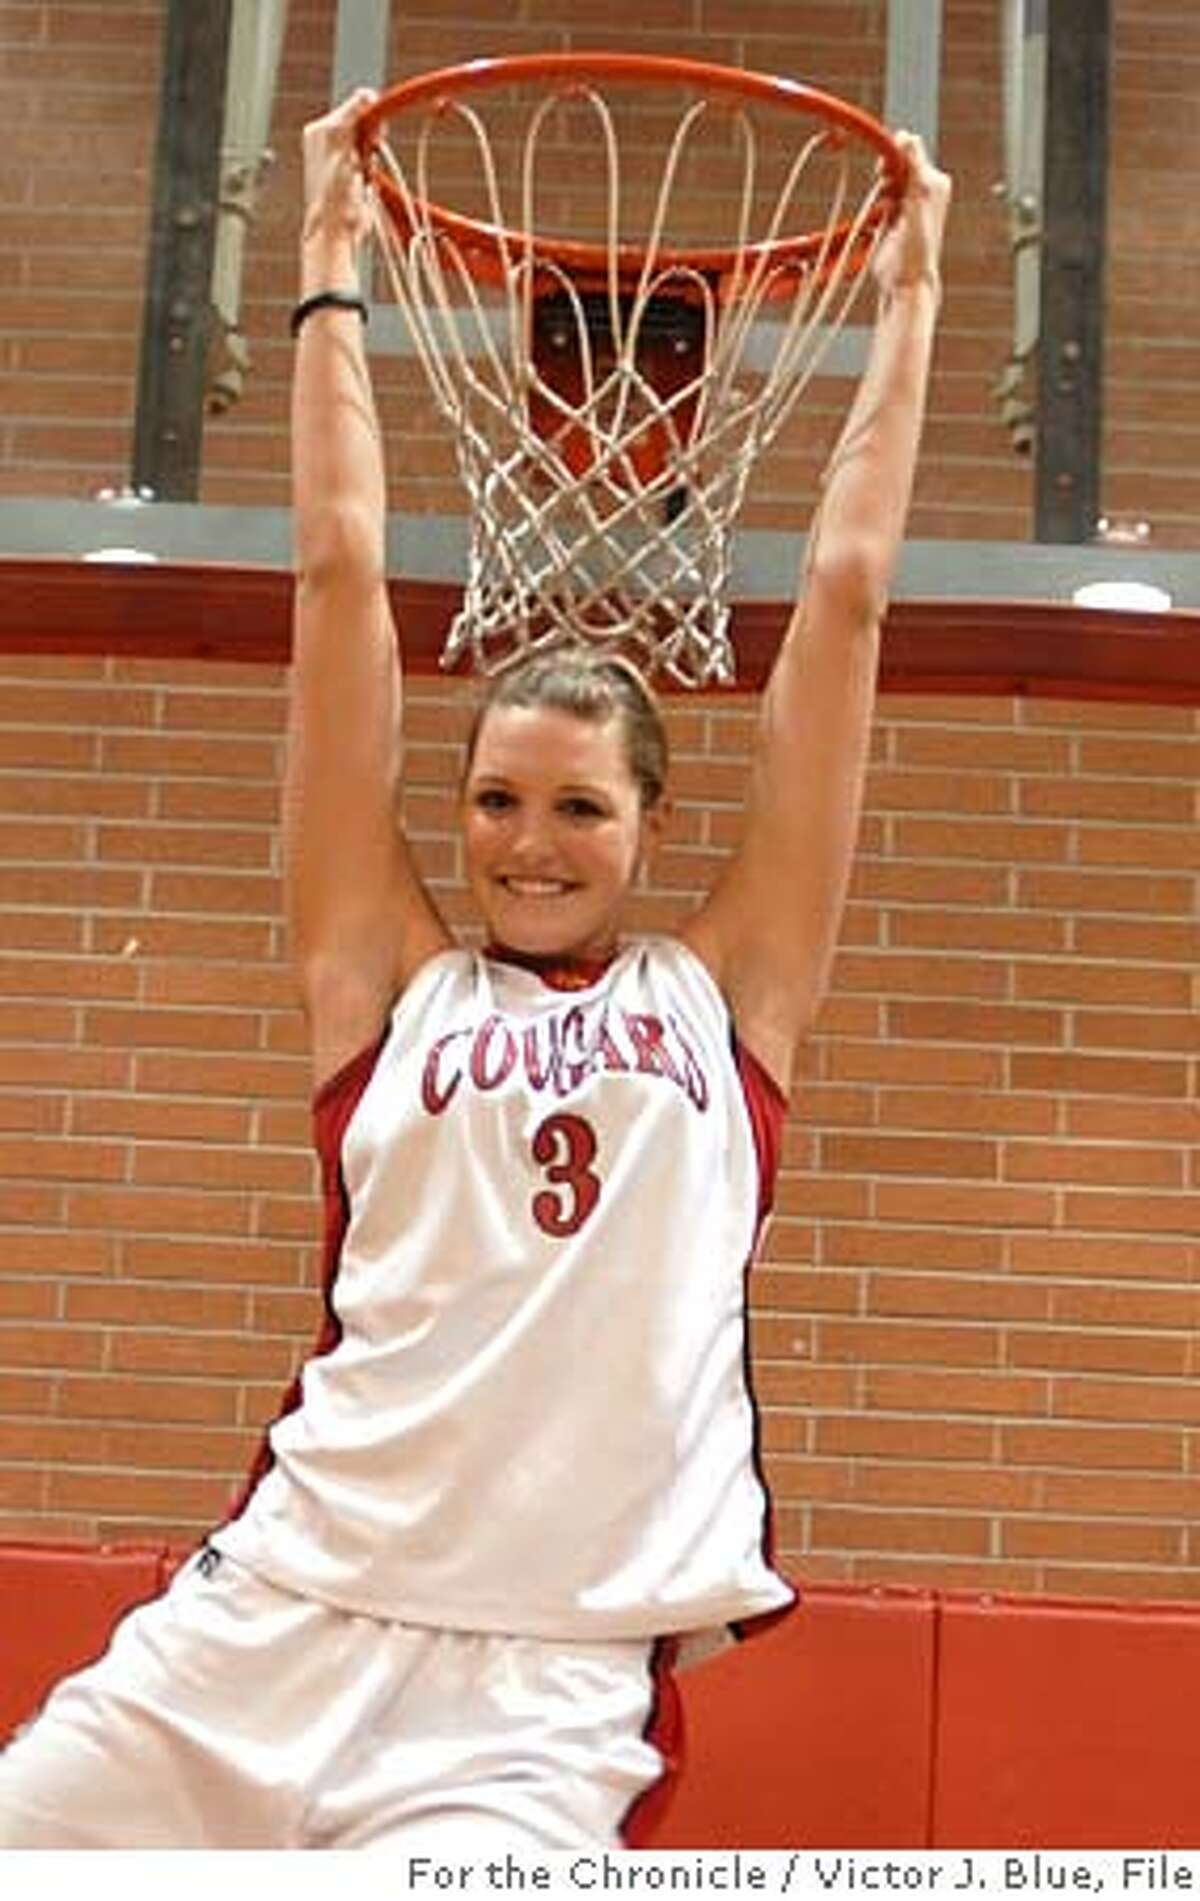 Sports Metro girls basketball Player of the Year Jayne Appel, a senior at Carondelet High, poses for a portrait in Carondelet's gym in Concord California, Friday March 24, 2006. Appel is McDonald's All American headed to Stanford. Photo/ Victor J. Blue, The Chronicle.